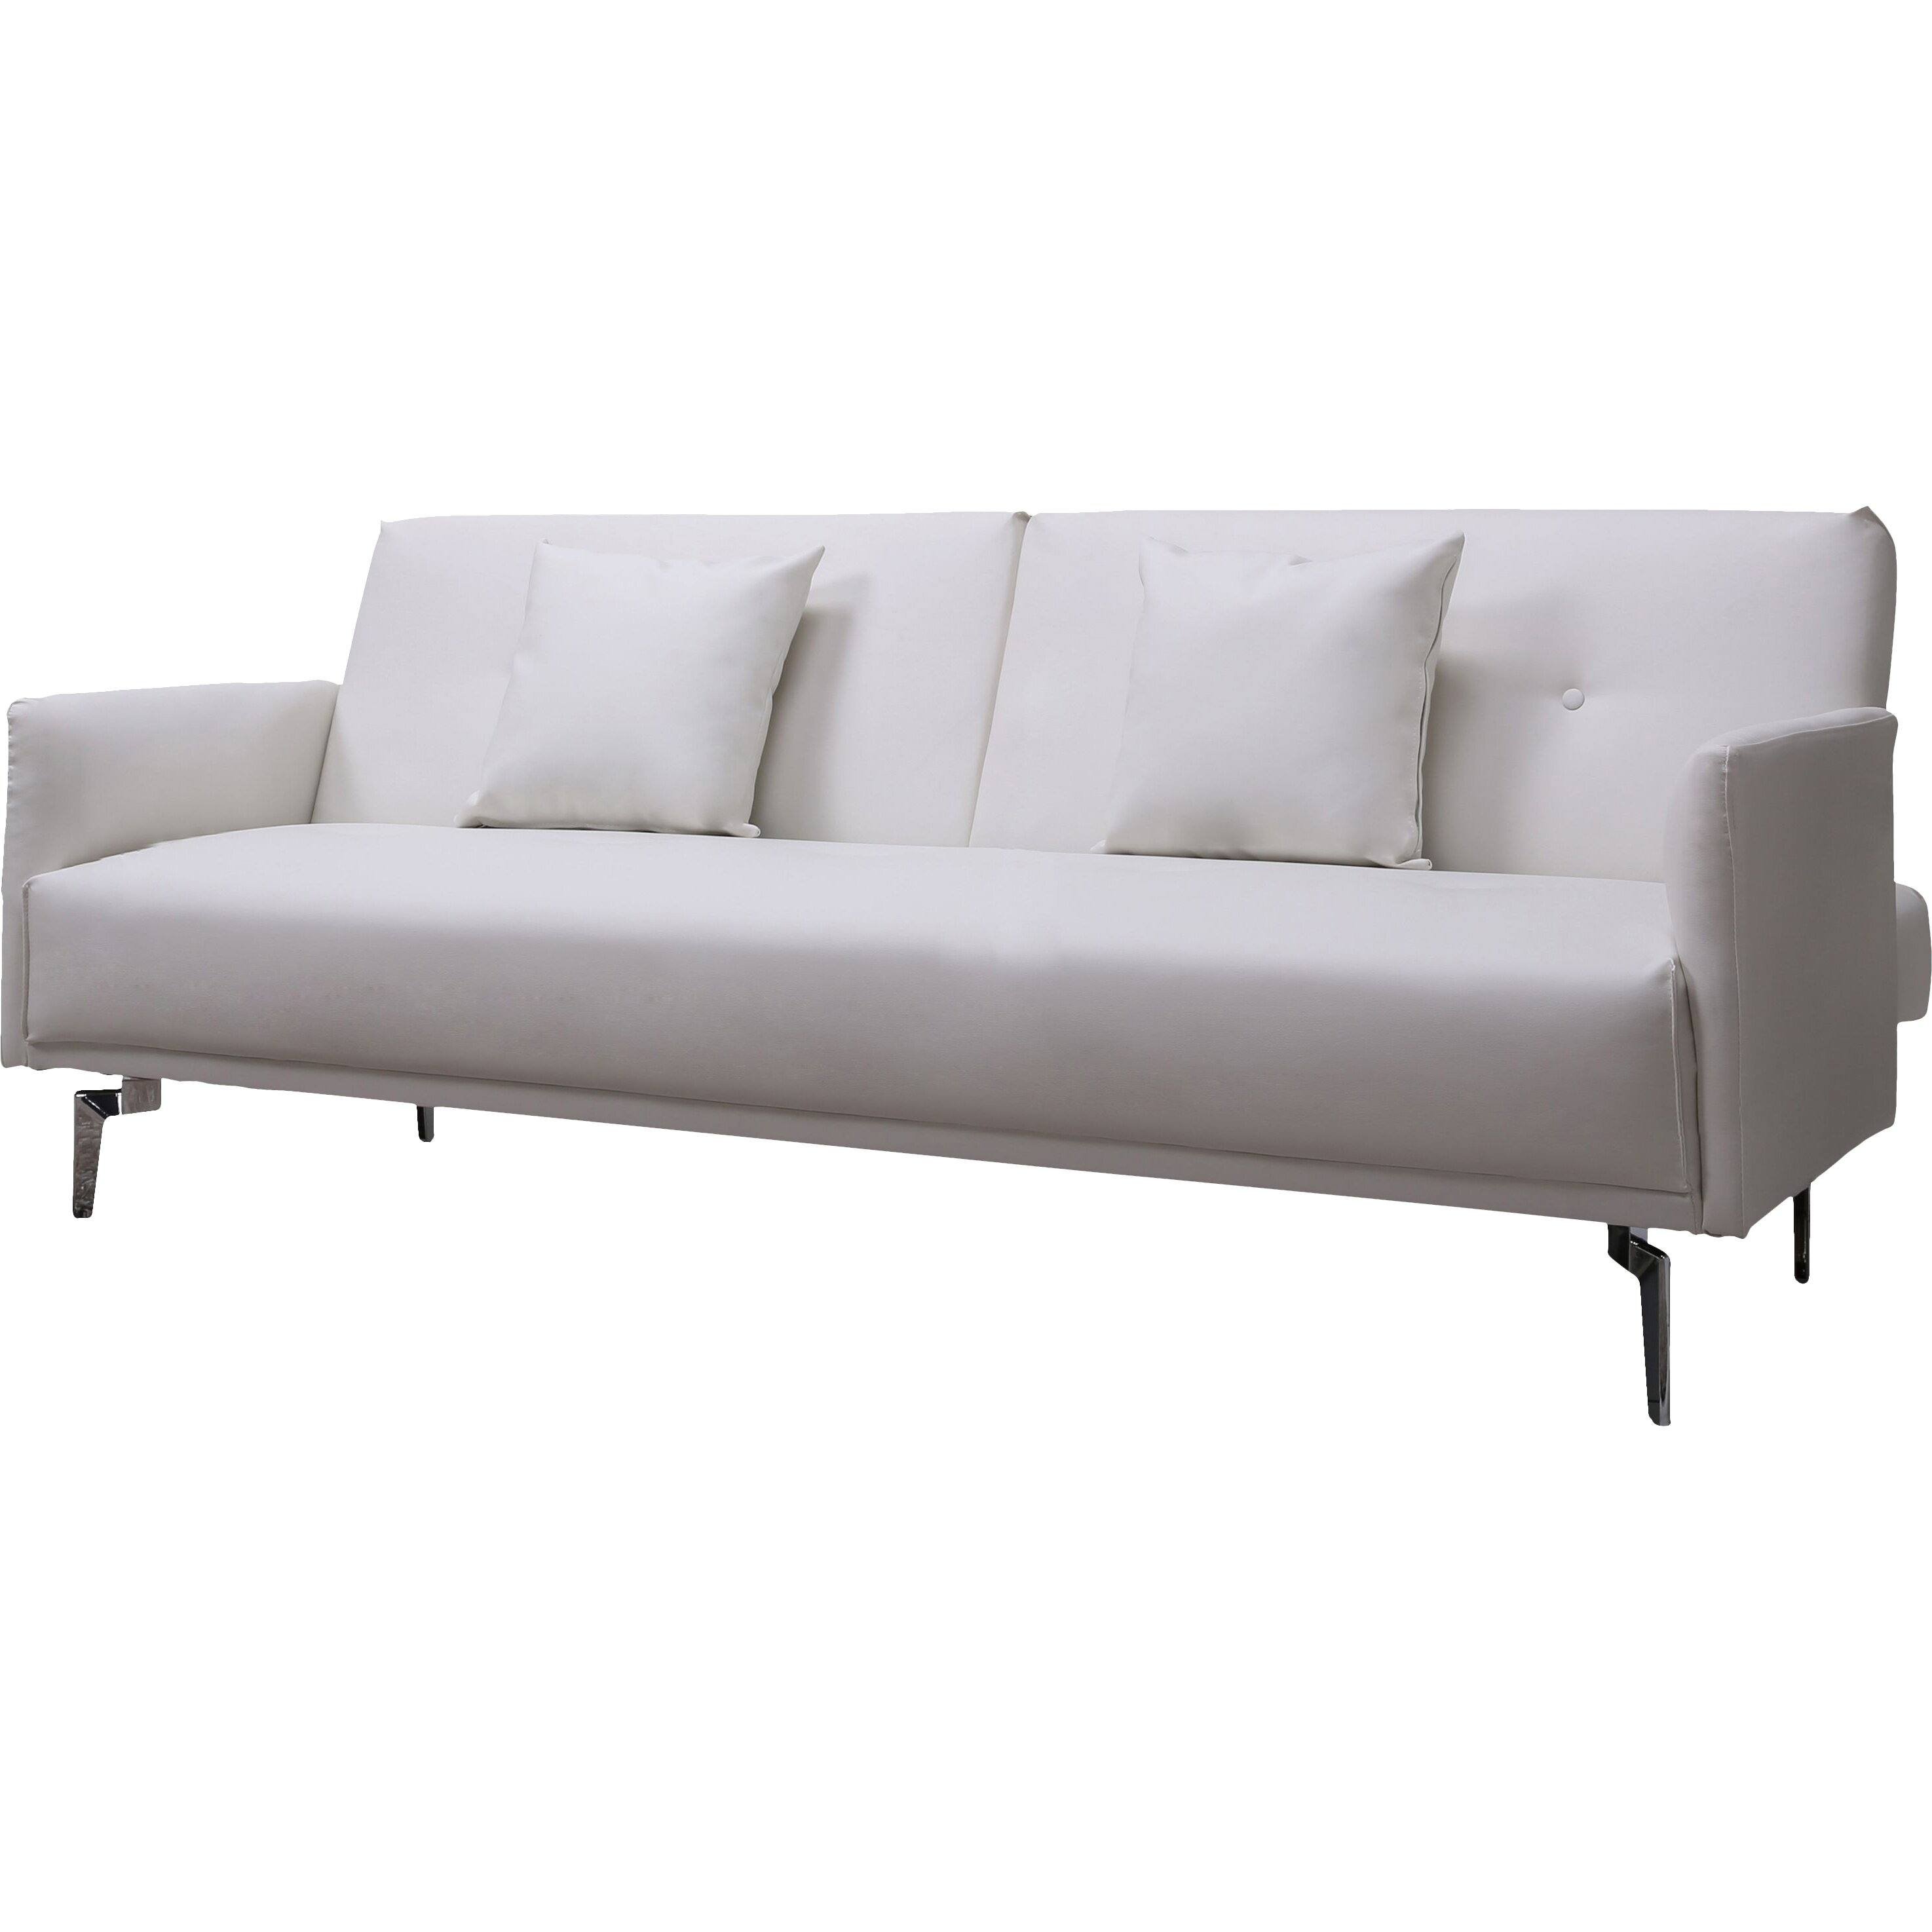 Leader Lifestyle Jensen Sofa Bed Review Conceptstructuresllc Com